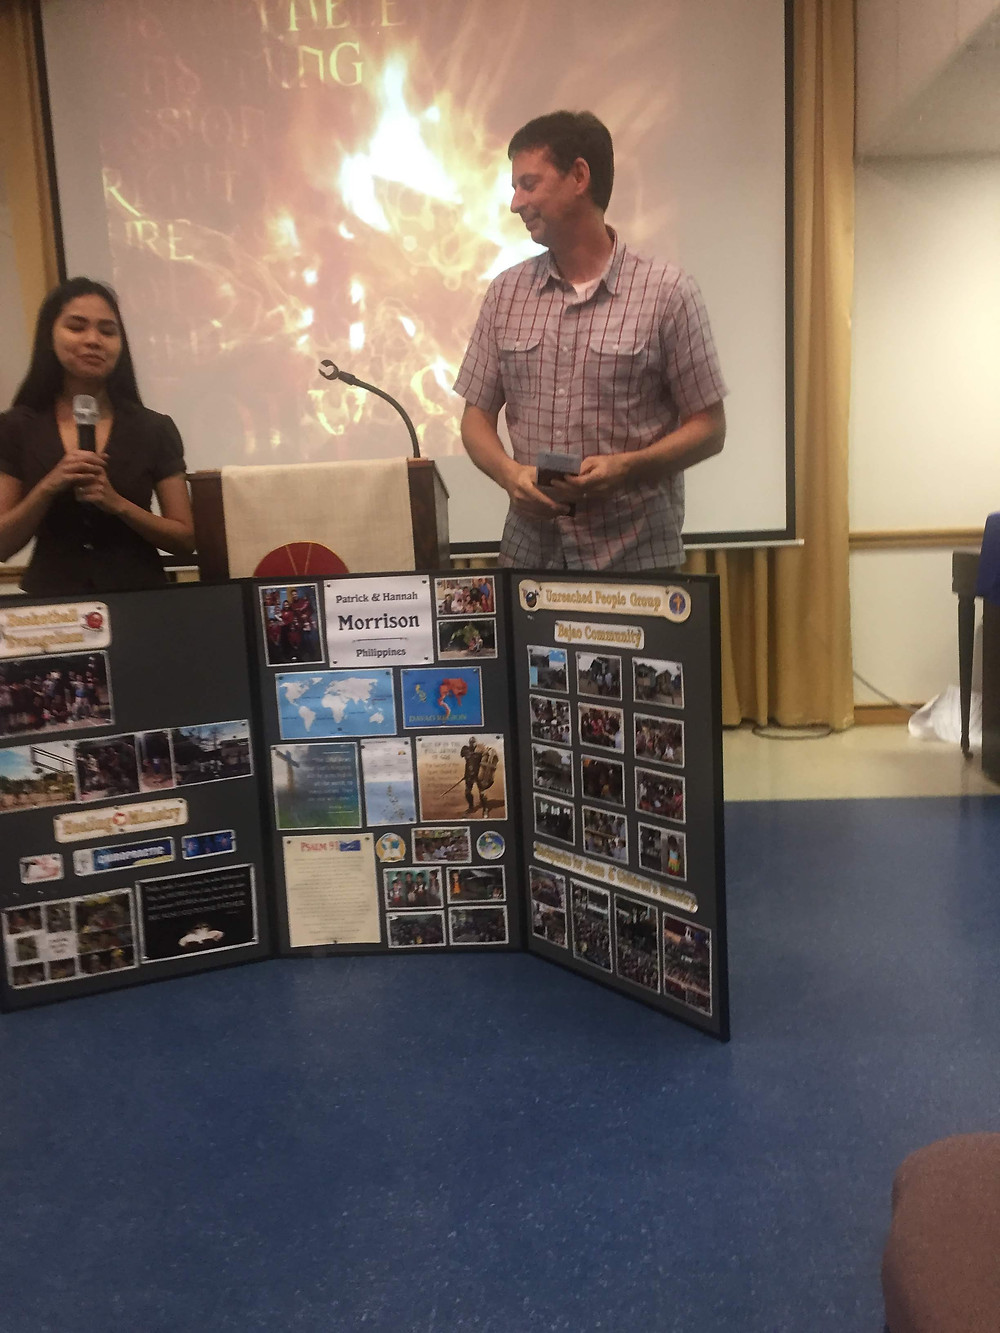 Hannah Morrison (left) and Patrick Morrison (right) tell us about the exciting things God is doing